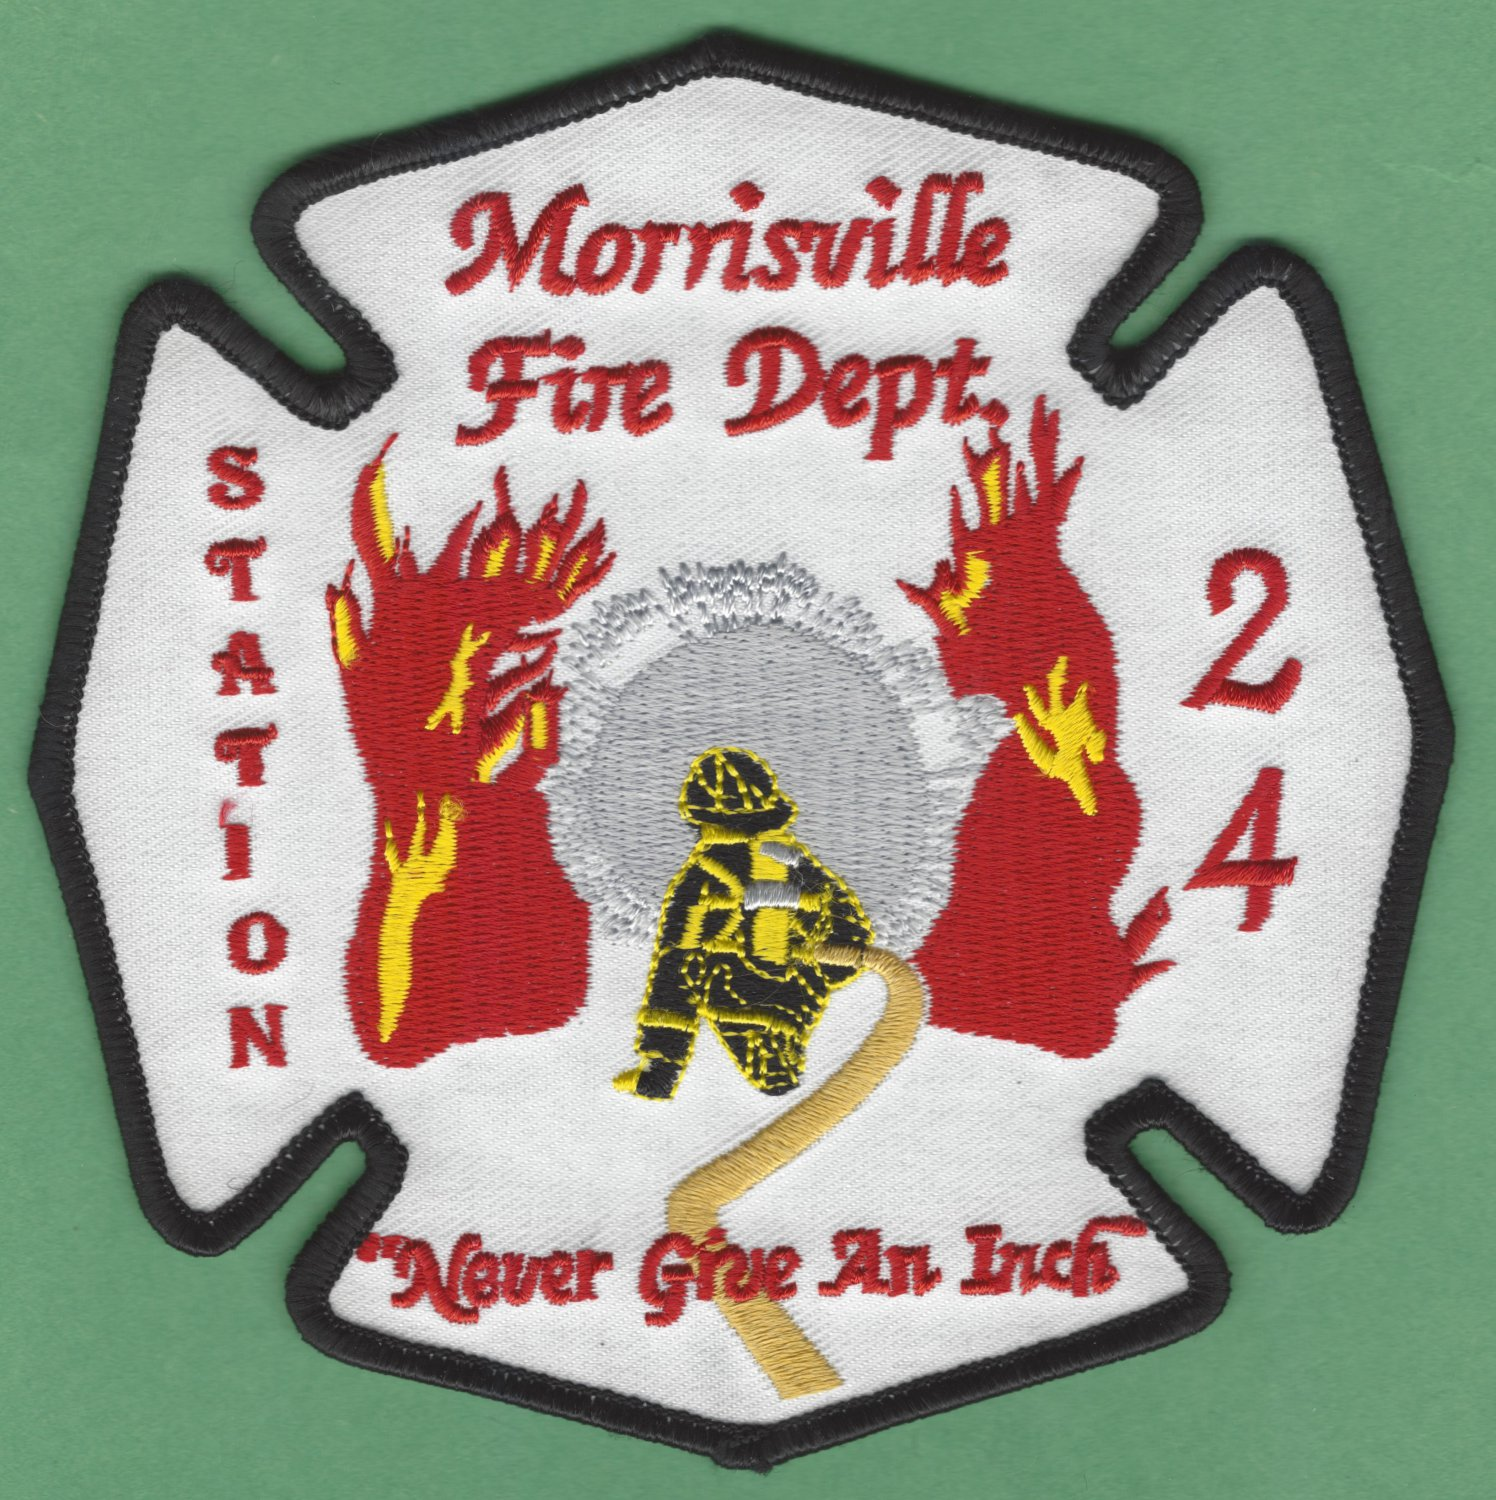 MORISVILLE NEW JERSEY FIRE RESCUE PATCH